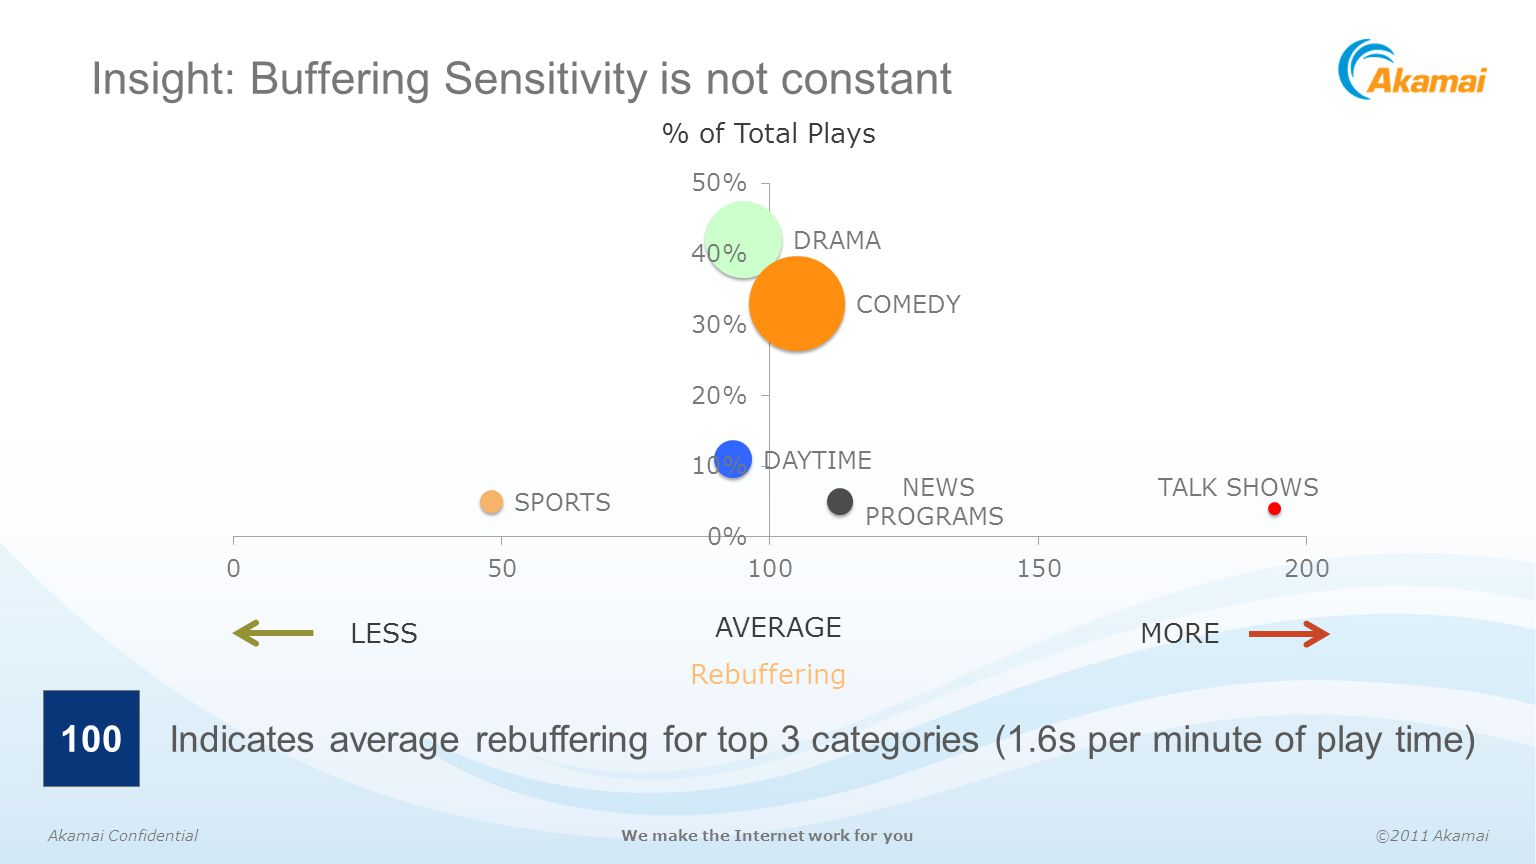 Insight: Buffering Sensitivity is not constant